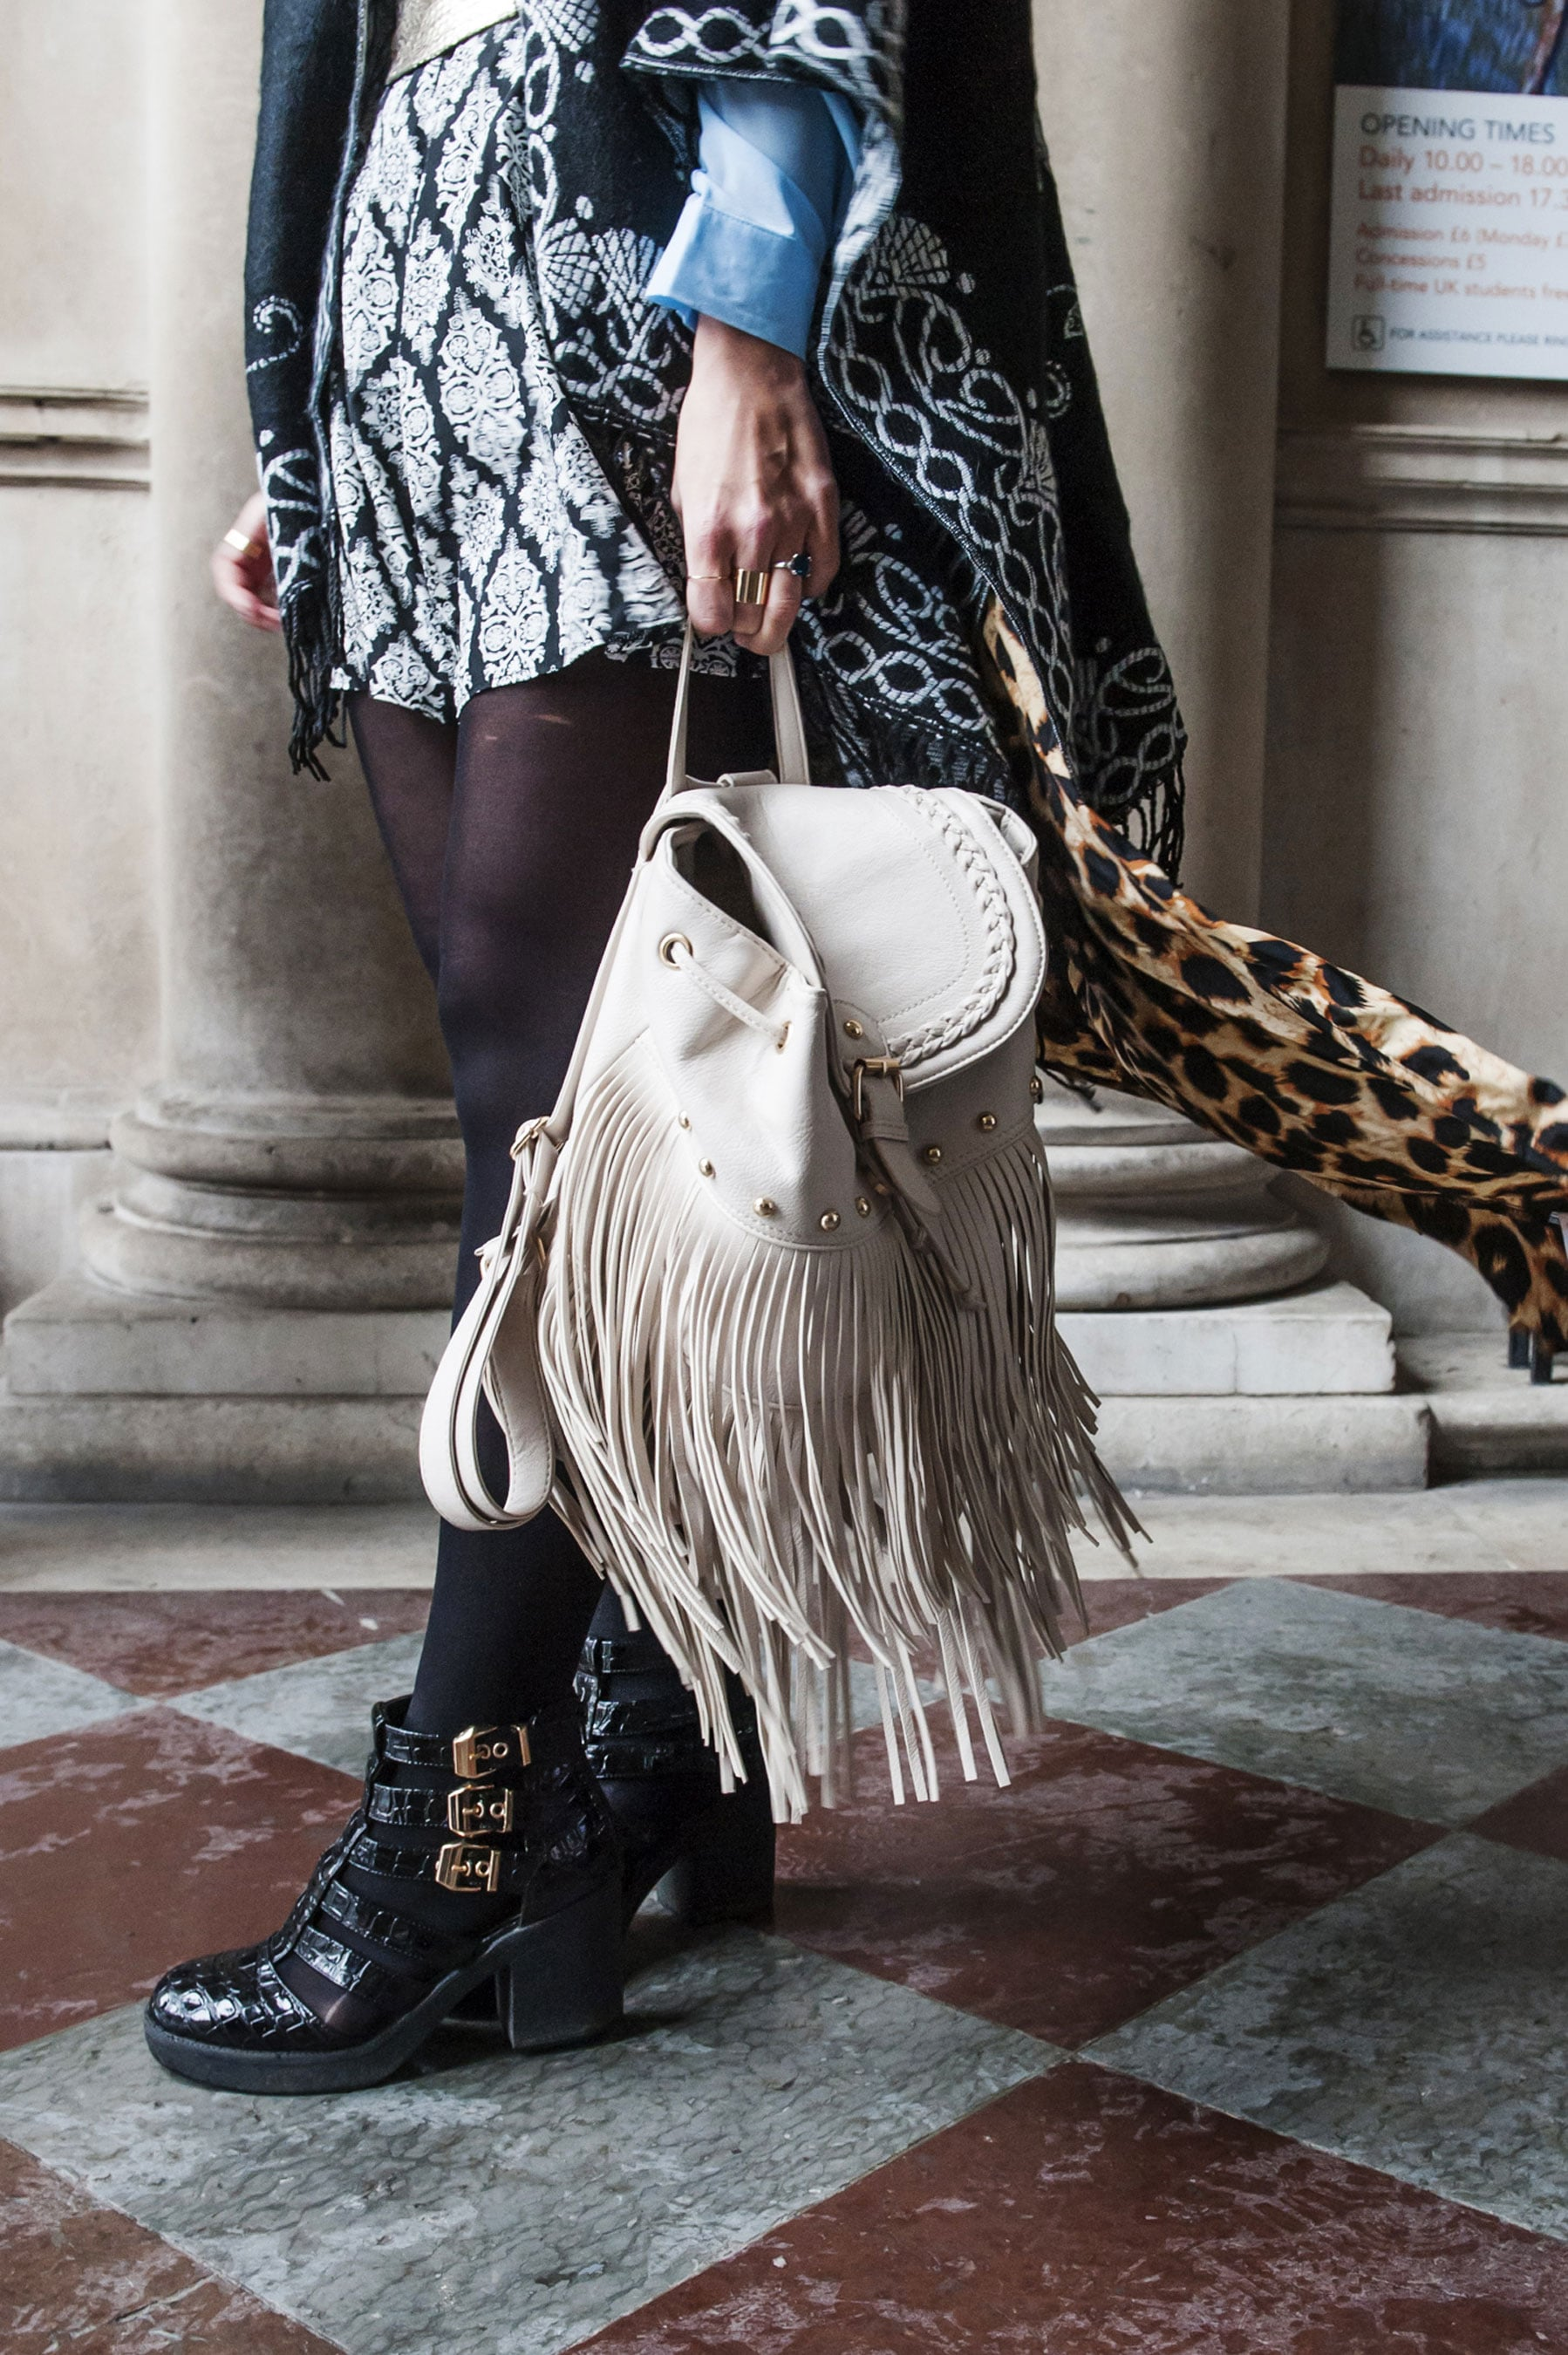 This bag has some serious fringe benefits.